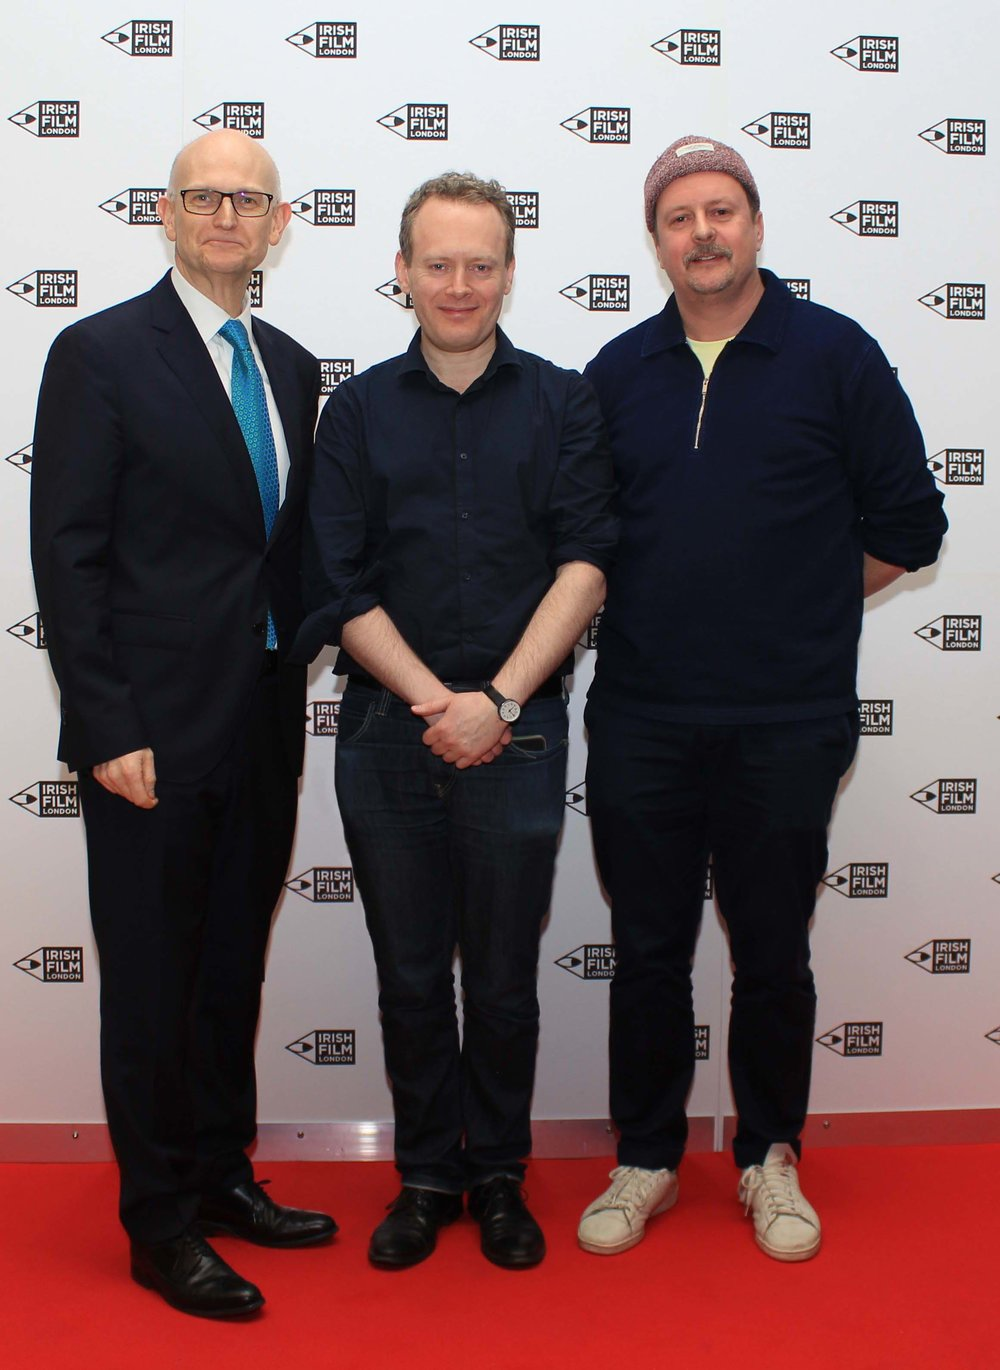 Irish Film London - Mark McNulty, Matthew Todd and John Butler